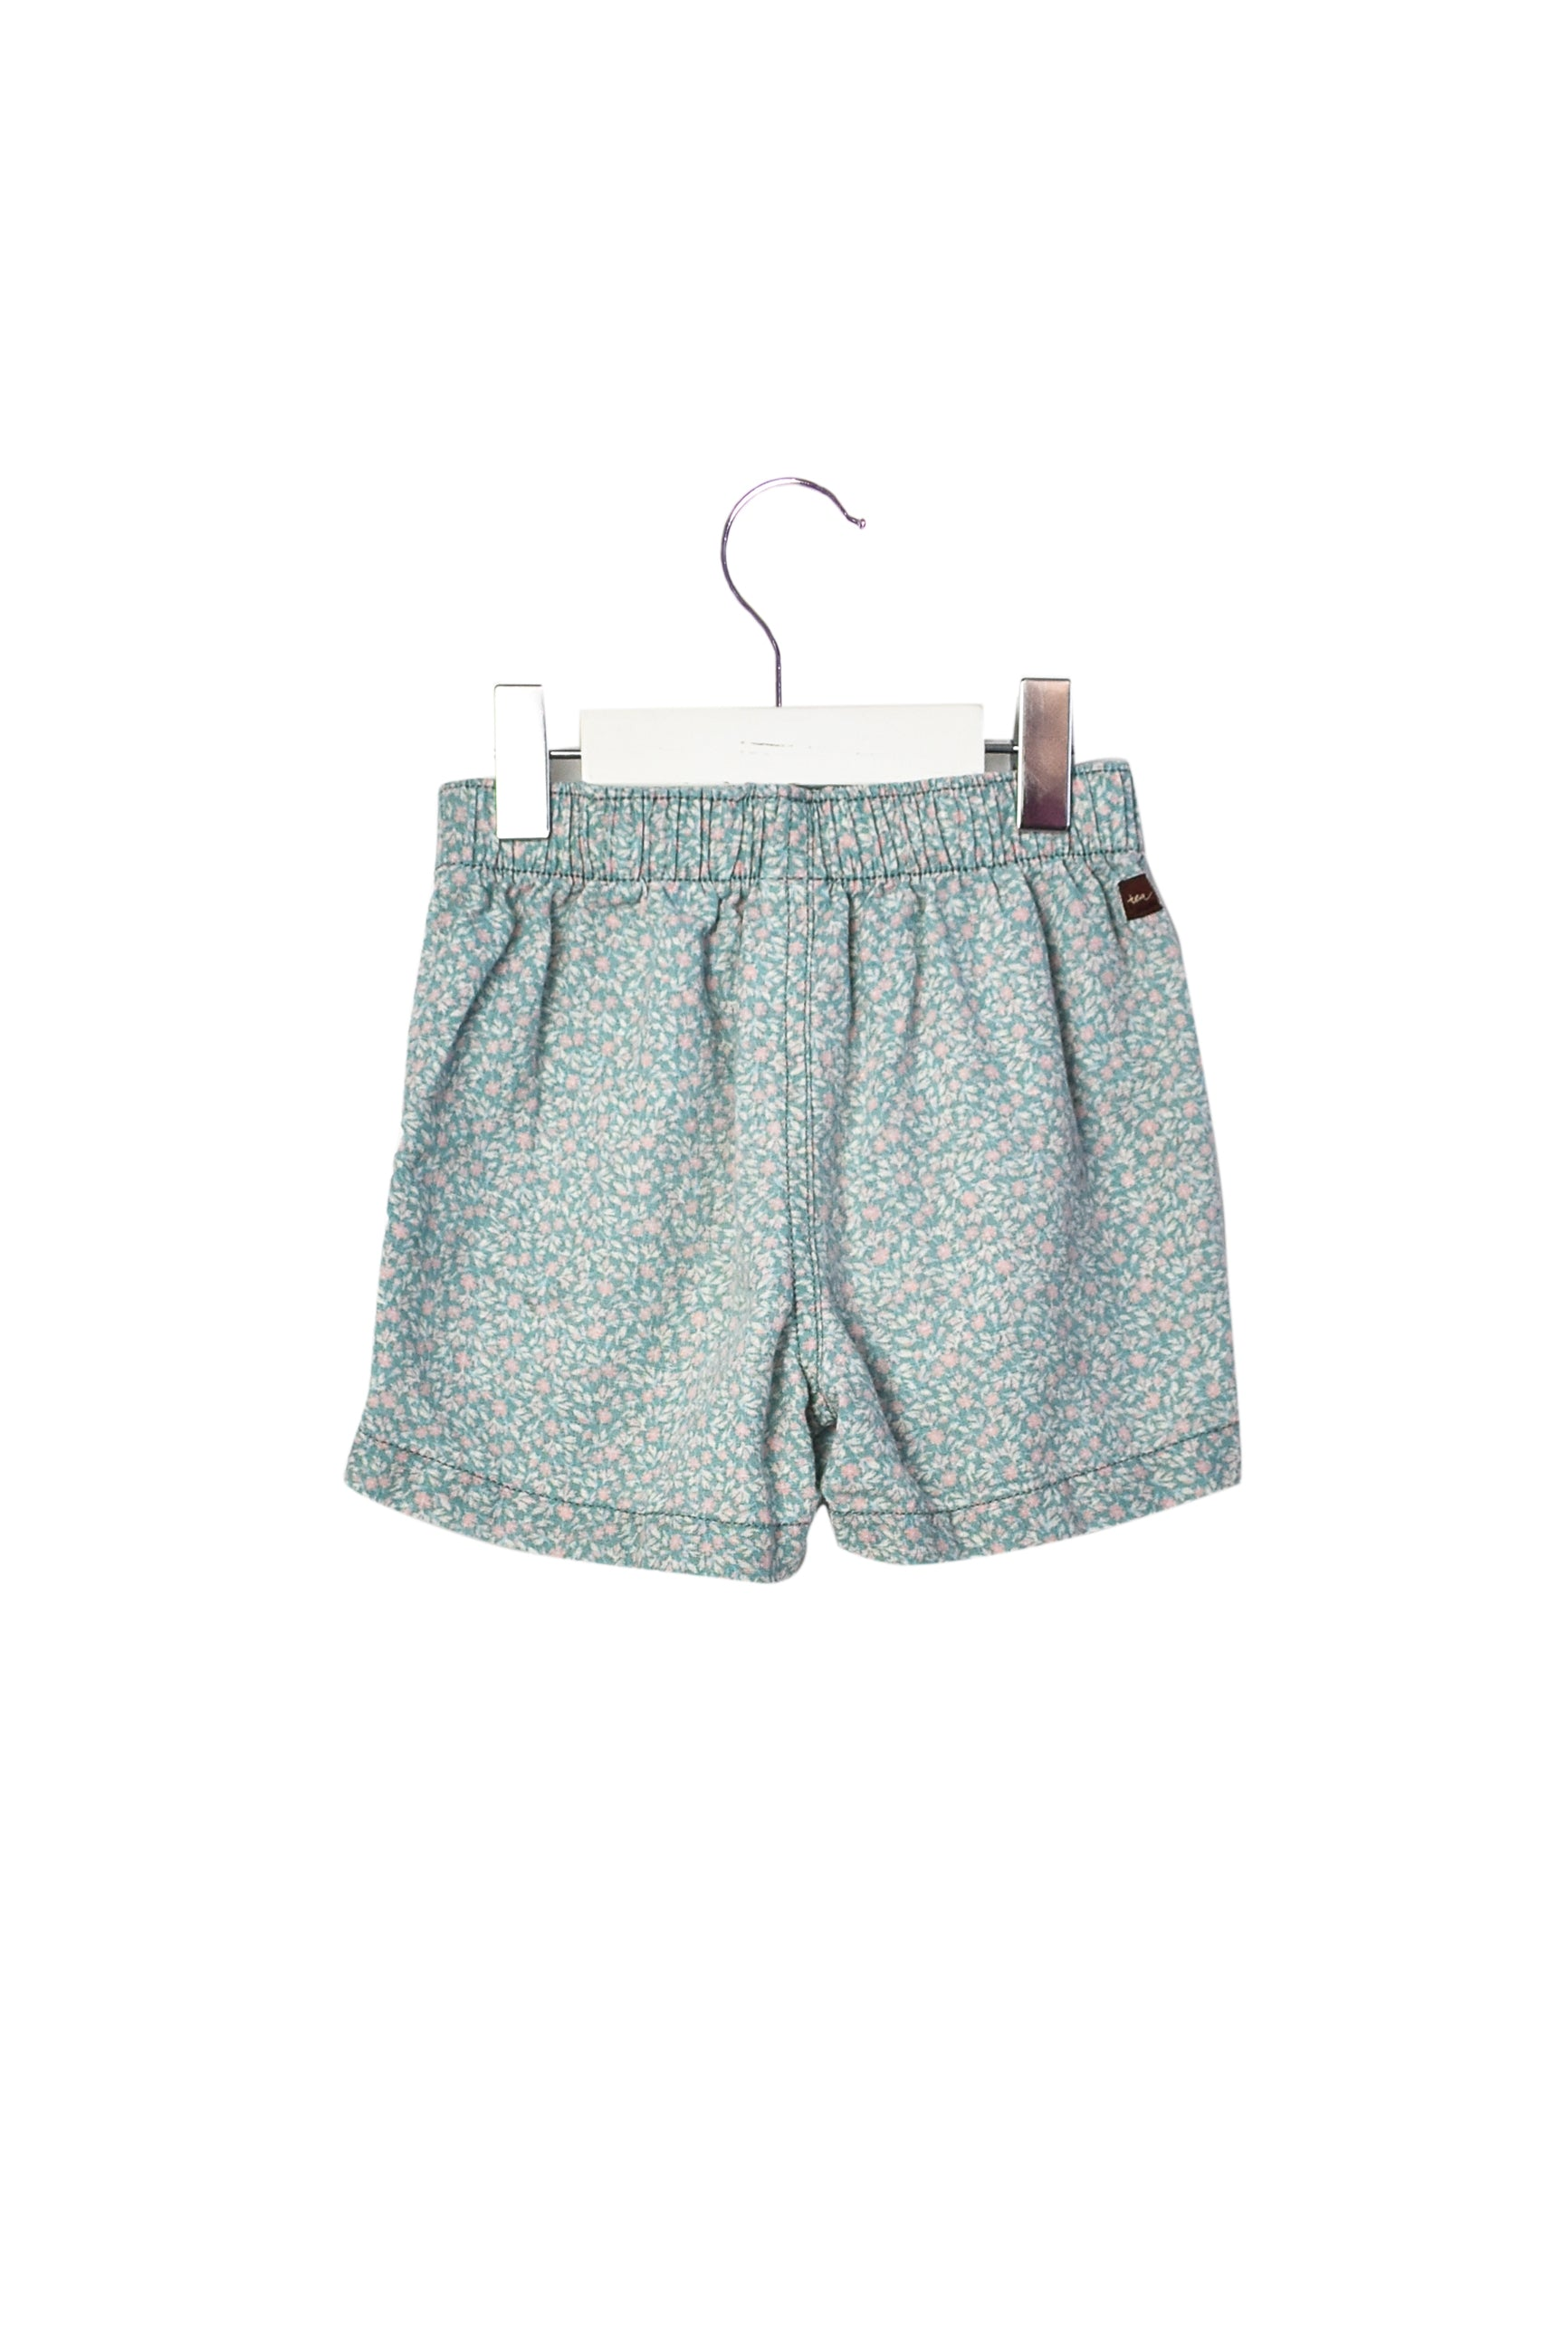 10006373 Tea Kids~Shorts 4T at Retykle